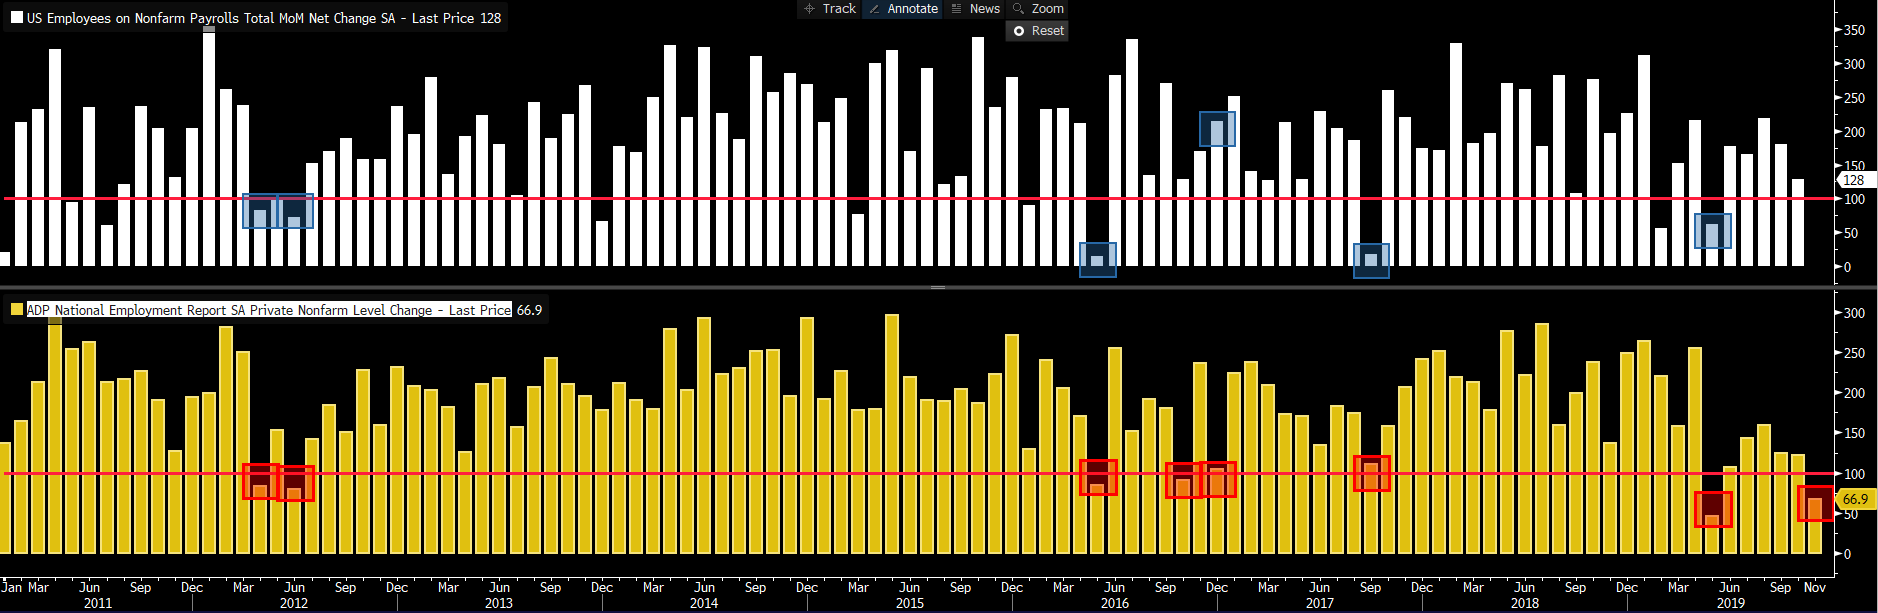 NFP Preview: GM effect to mask slowdown?